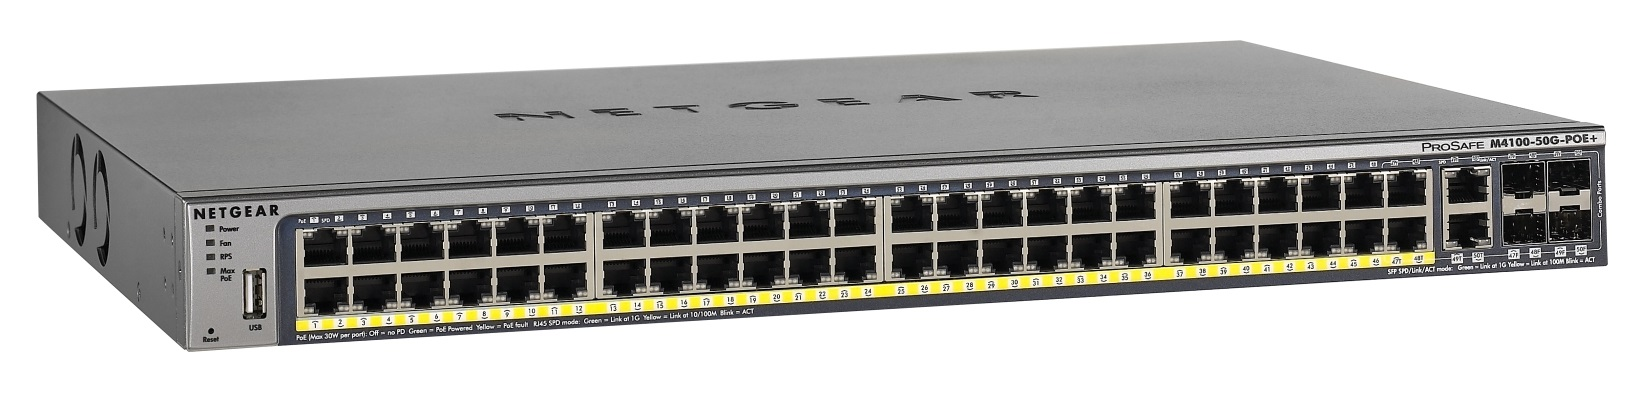 Netgear M4100-50G-POE+ L2 Managed Switch 50-Port PoE+ Gigabit (GSM7248P)